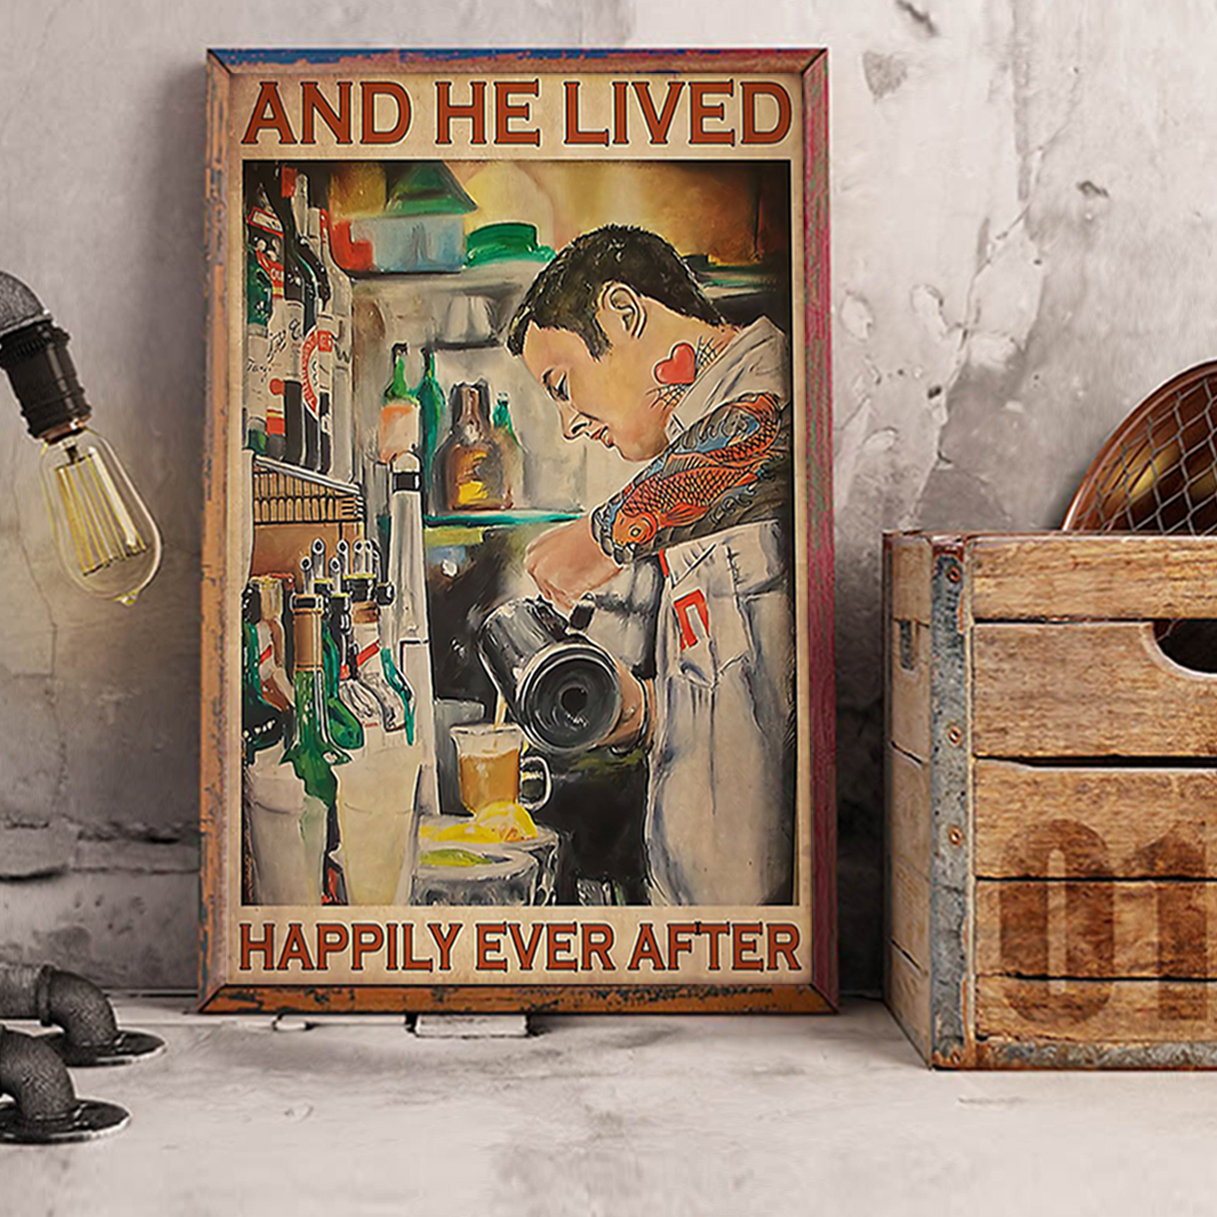 Bartender and he lived happily ever after poster A3